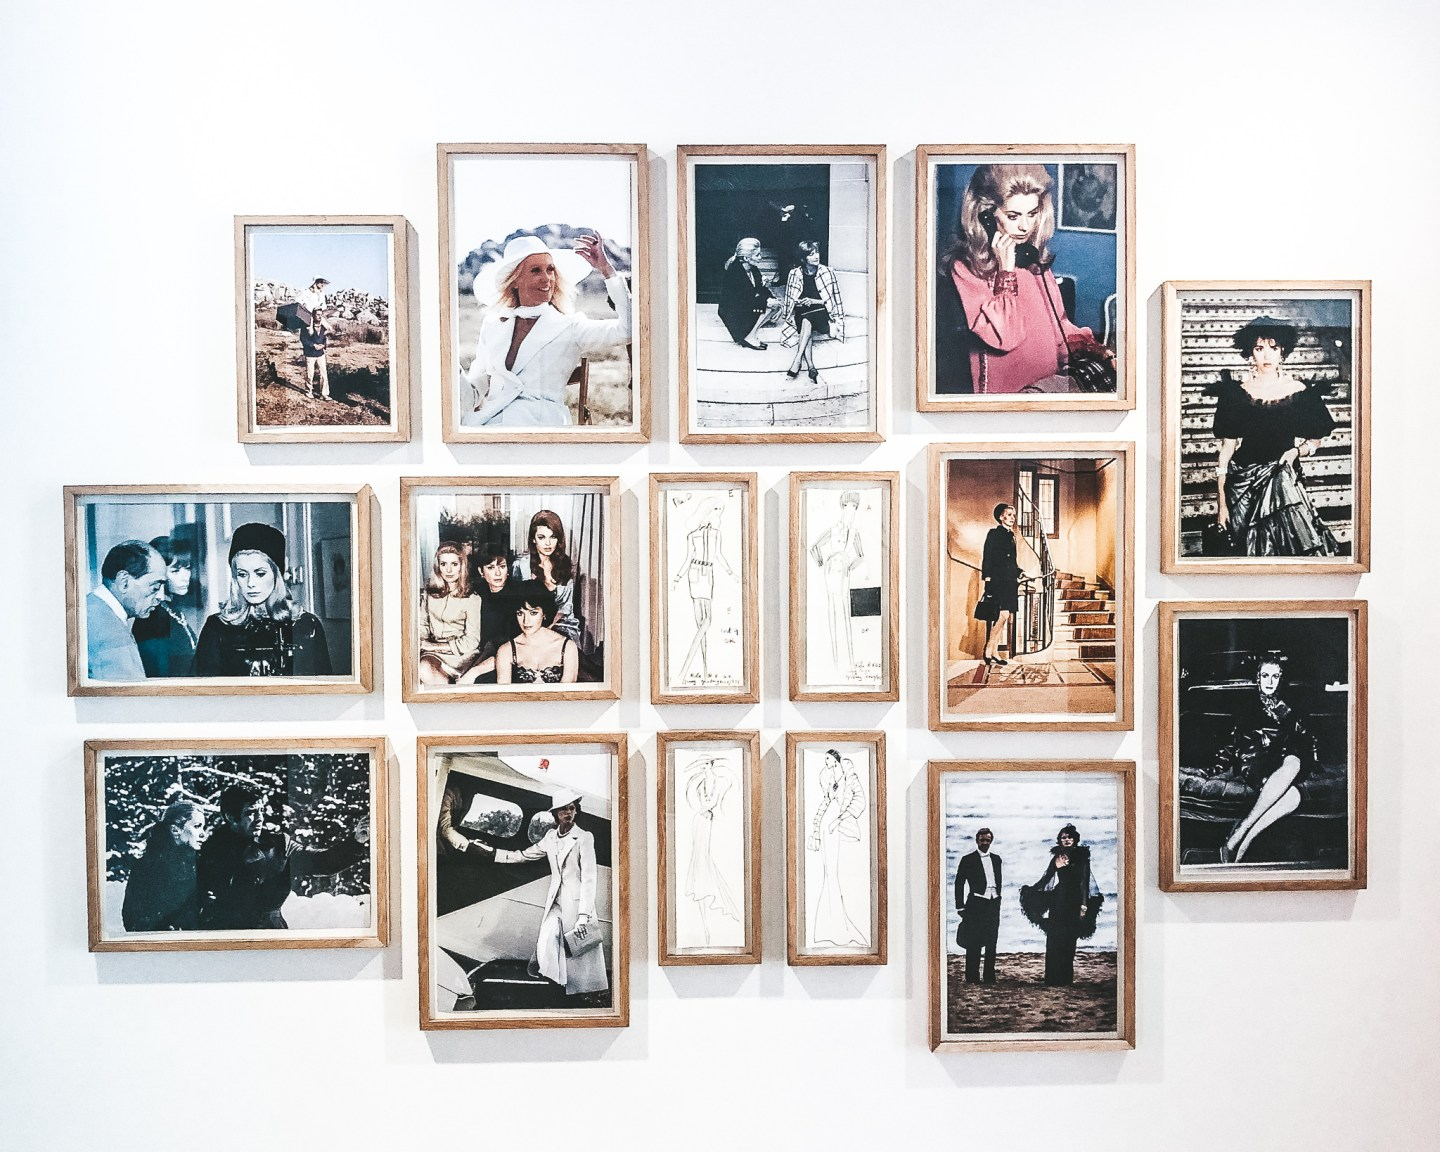 The Yves Saint Laurent Museum